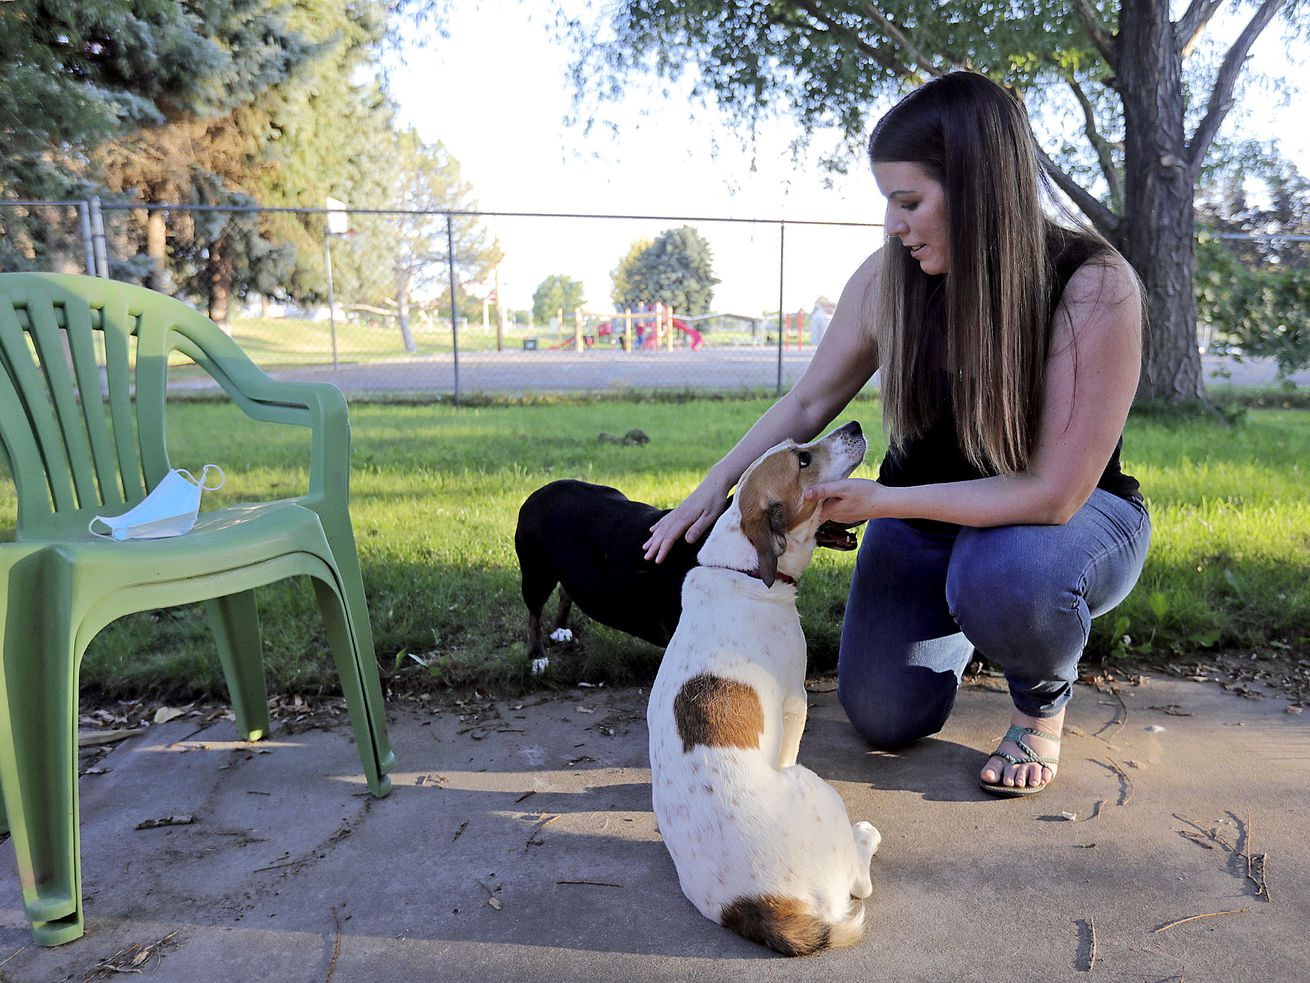 Lisa O'Brien plays with her dogs Jersey and Dottie outside of her home in Roy on Monday, Aug. 17, 2020. O'Brien has suffered blood clots, tachycardia and excessive fatigue in the five months since she was sick in early March with what she and her doctors believe was COVID-19.